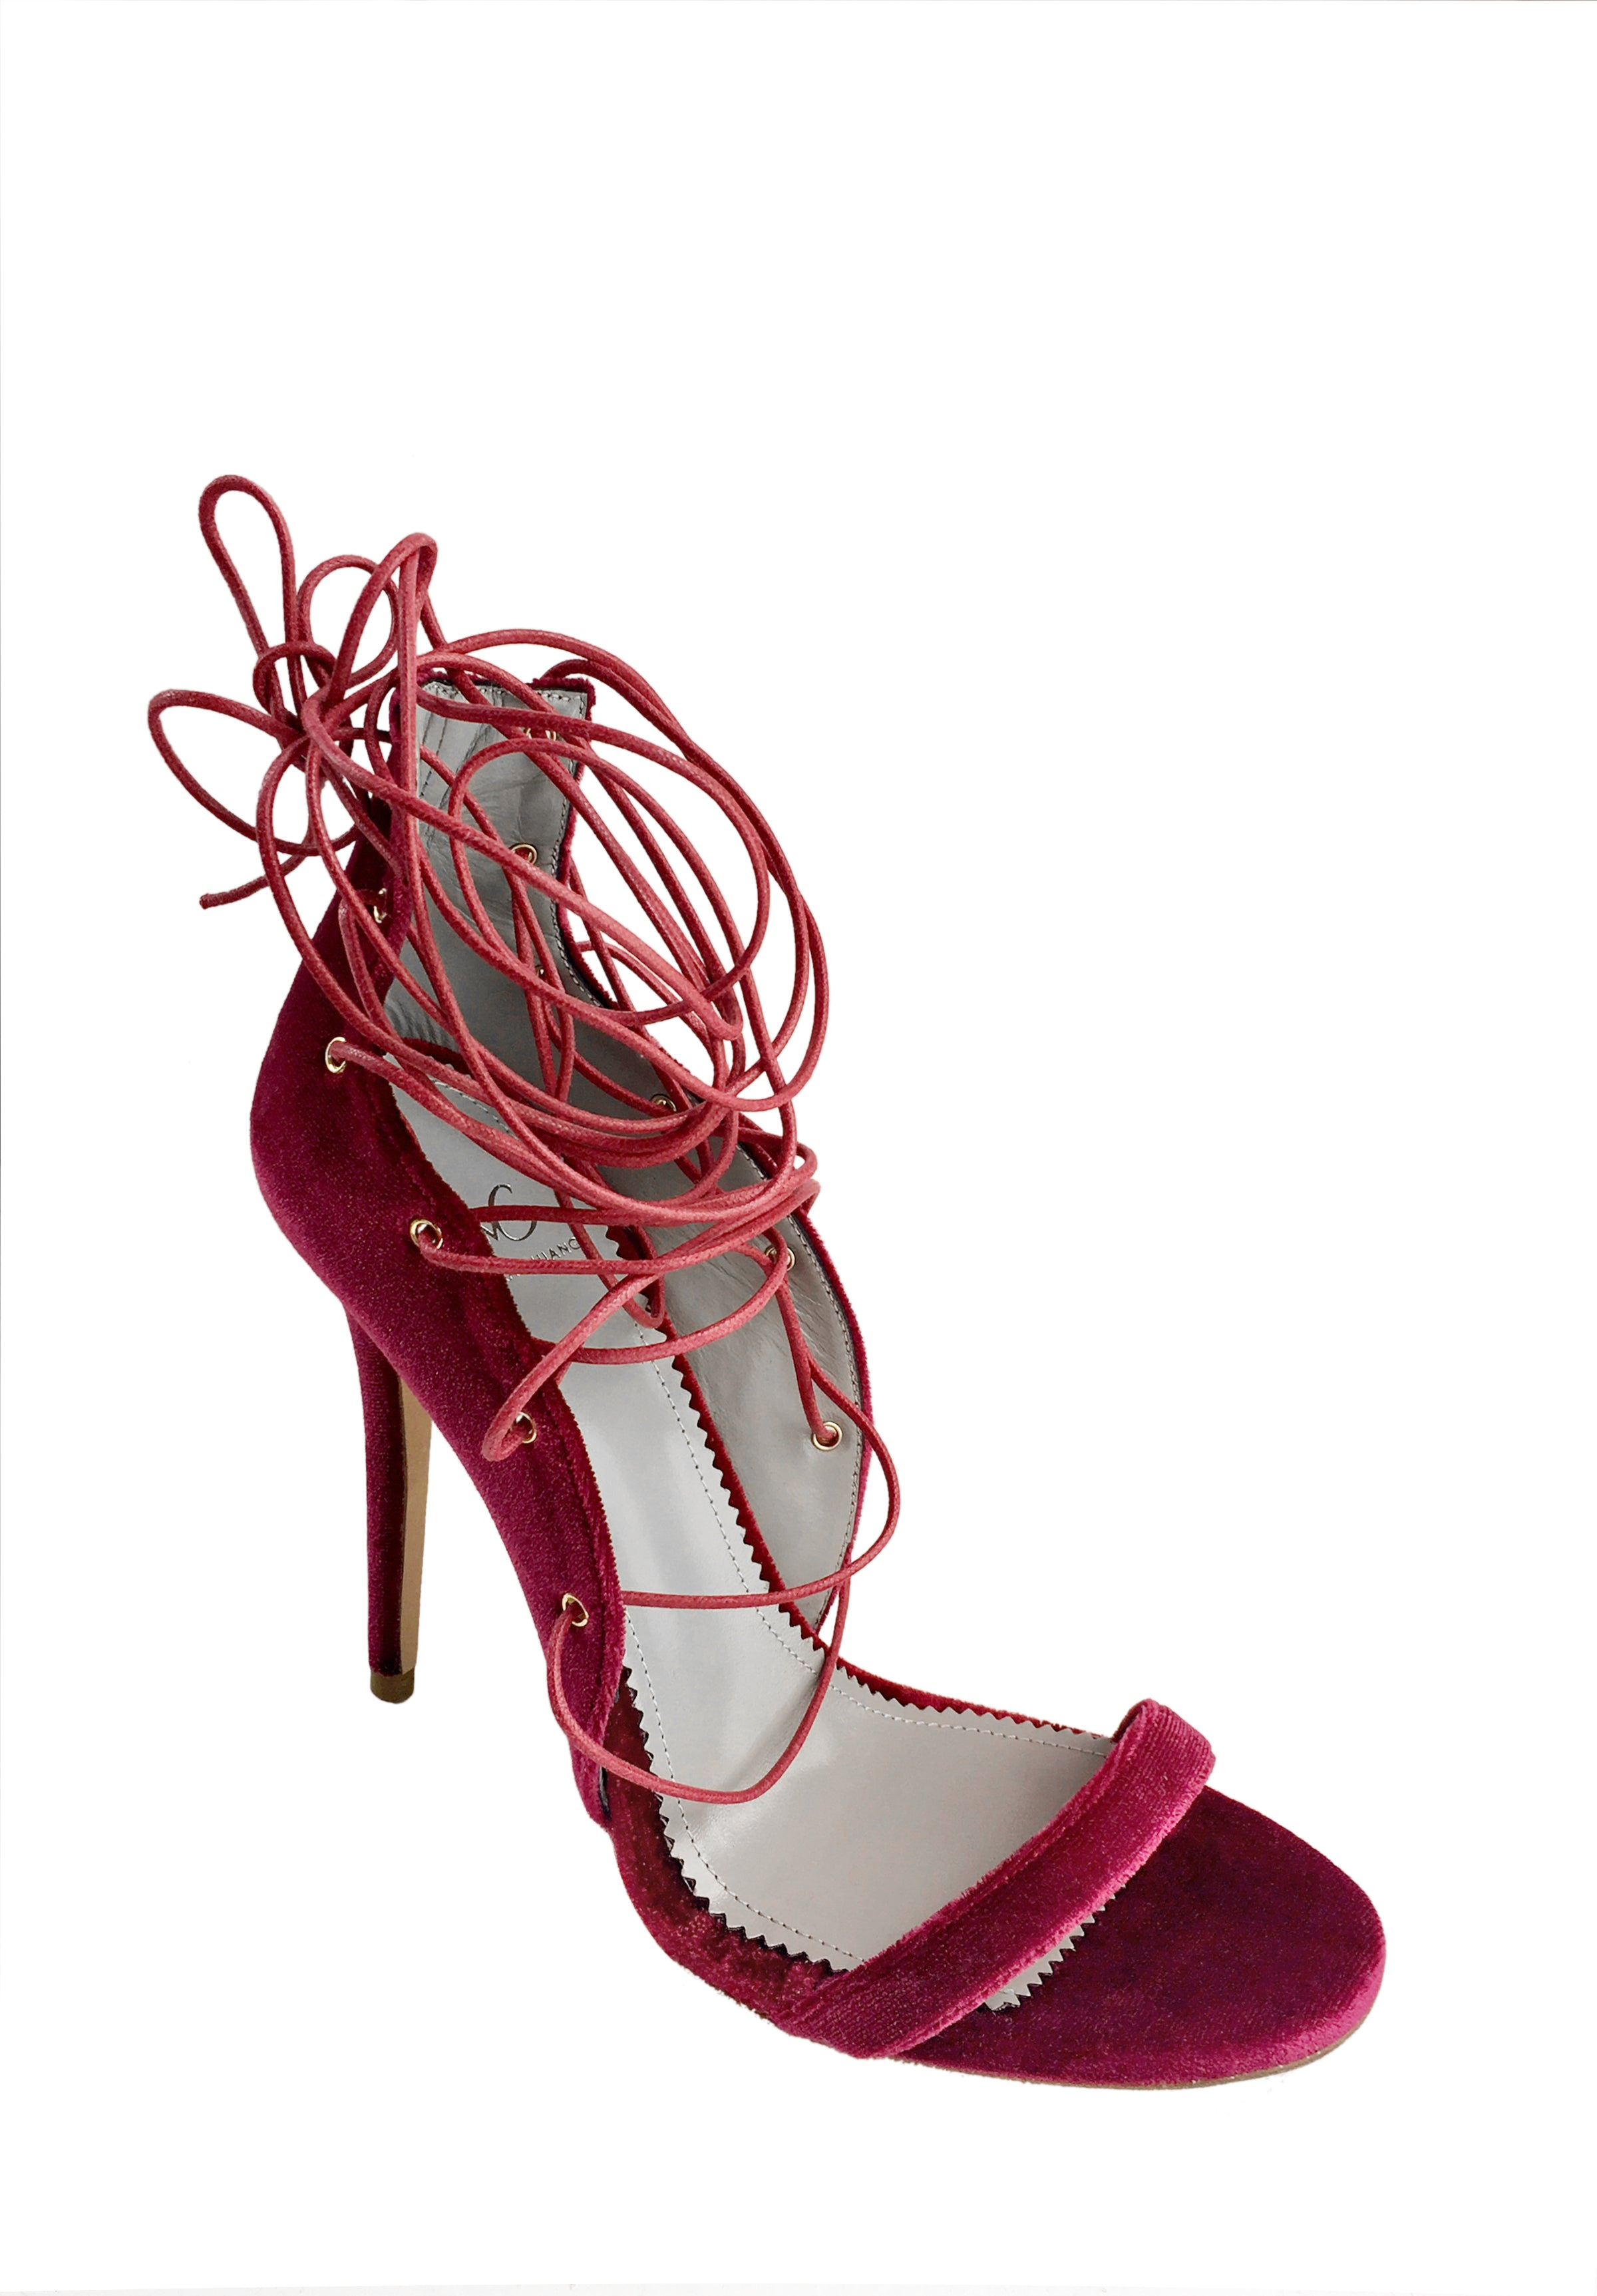 LARA WINE VELVET LACE-UP SANDAL - Monika Chiang